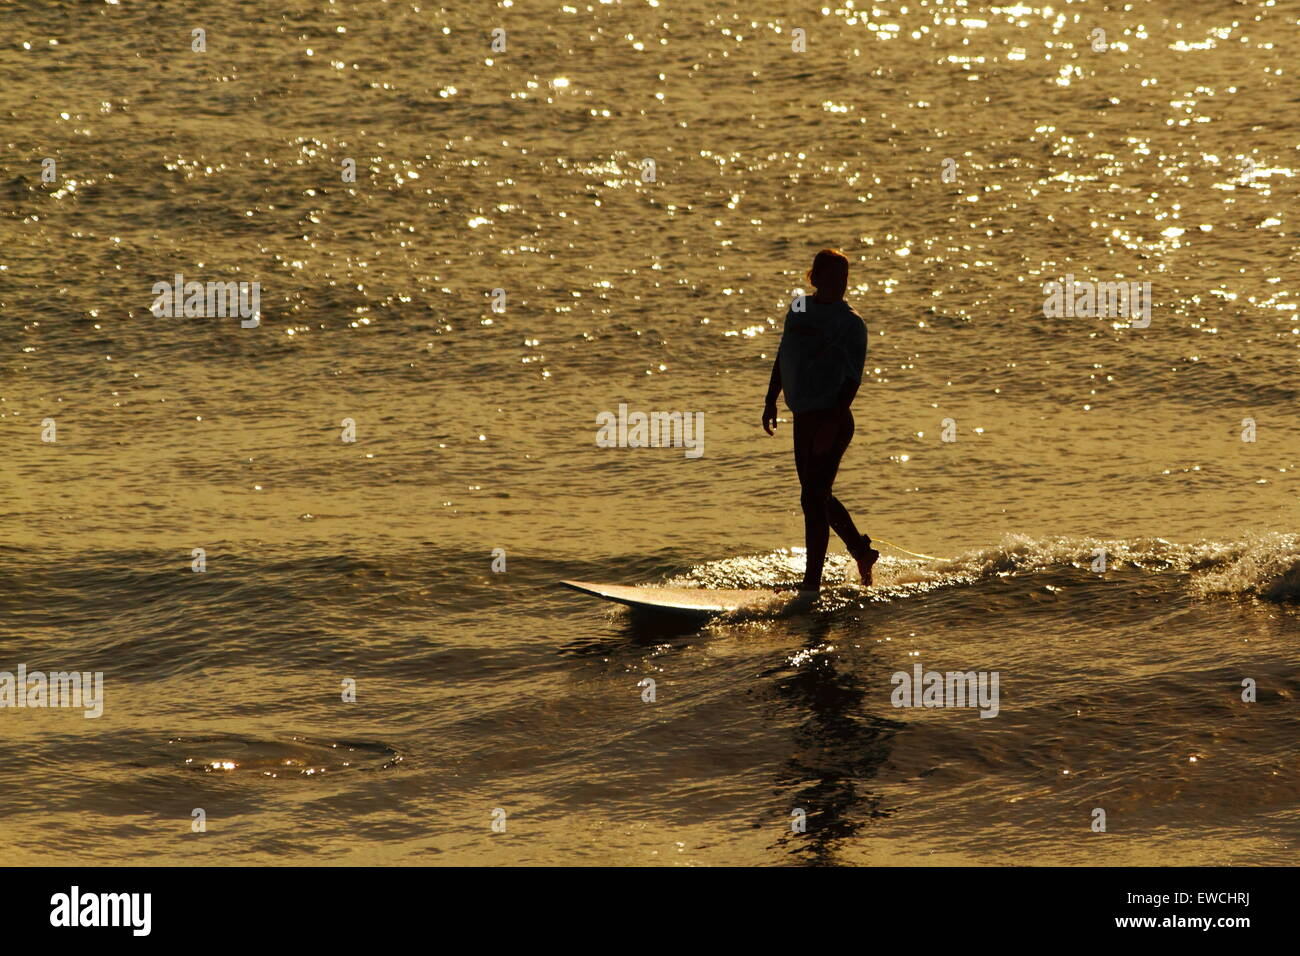 Surfer Pose Stock Photos Surfer Pose Stock Images Alamy